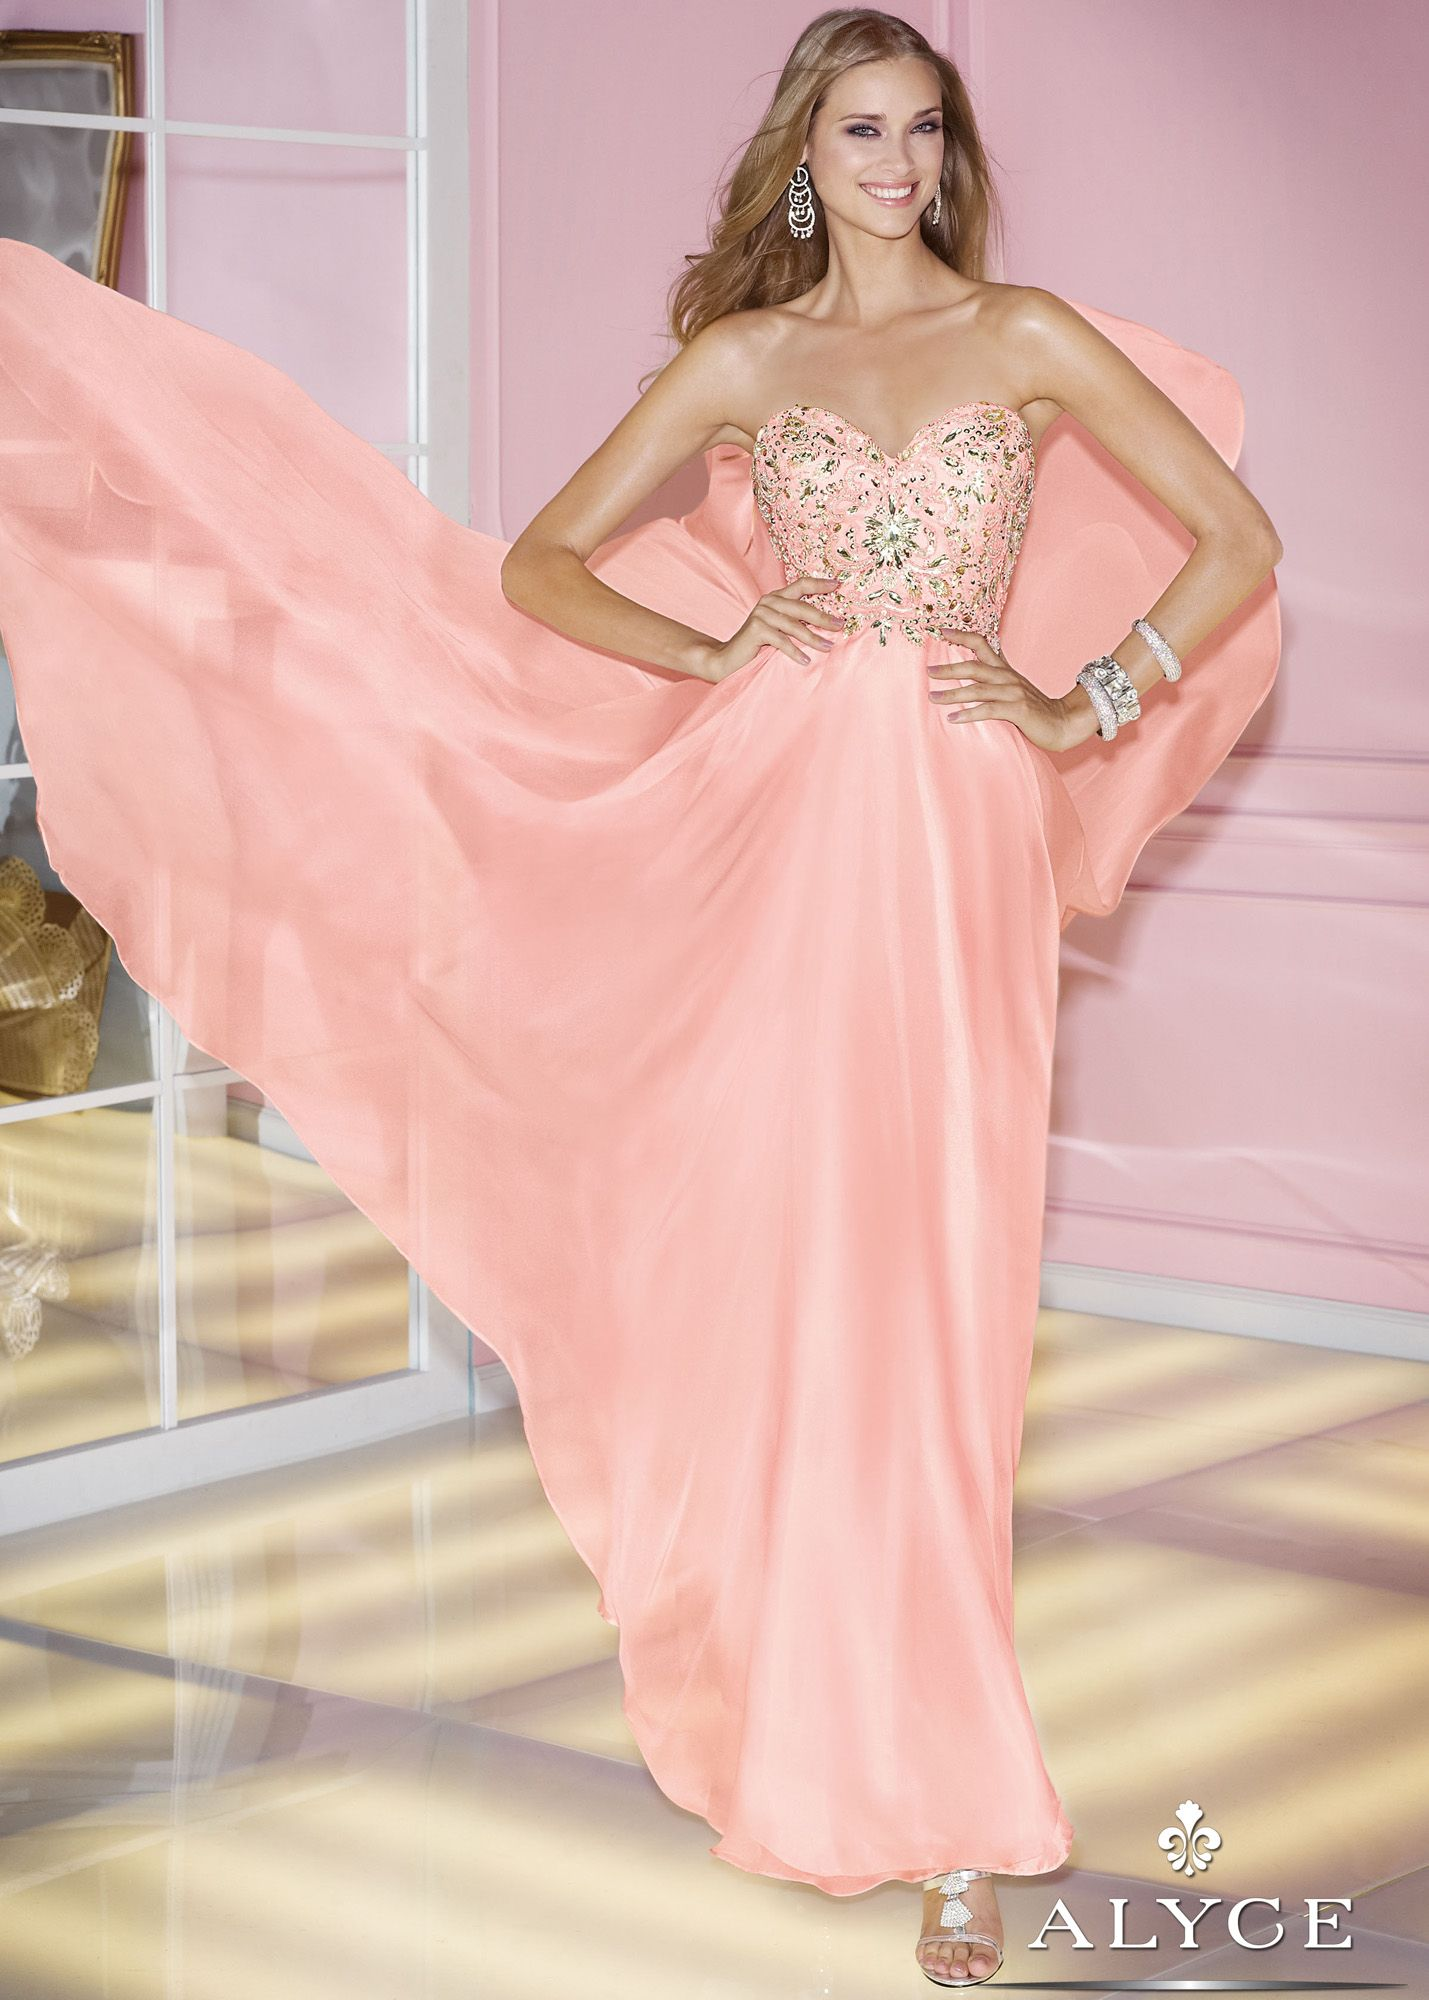 Alyce Prom 6227 - Blush Pink Strapless Sweetheart Beaded Prom ...